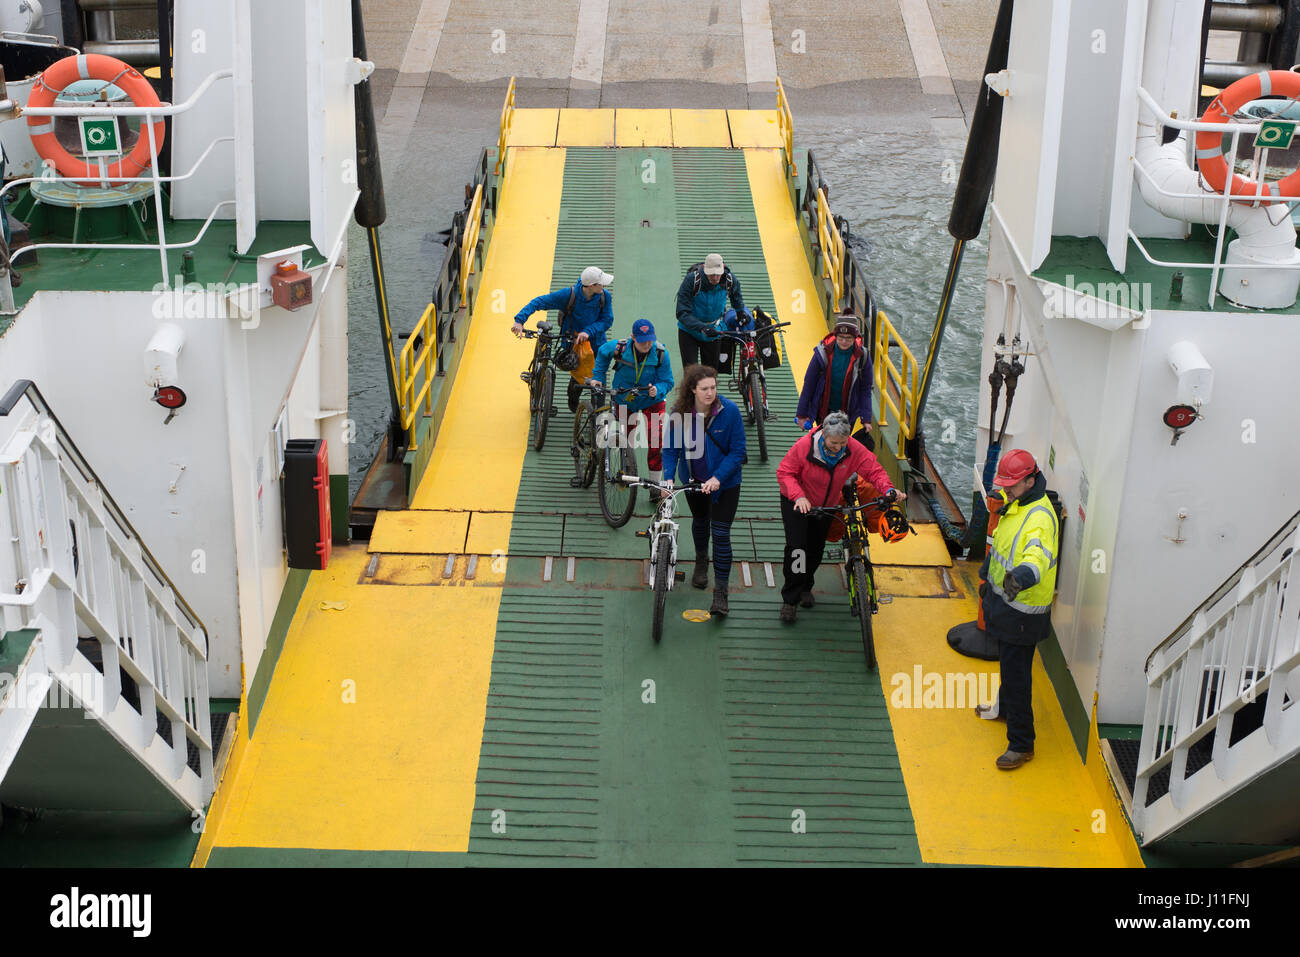 Passengers boarding the Cal Mac Ferry Lochnevis on the island of Rum Inner Hebrides,  Scotland - Stock Image